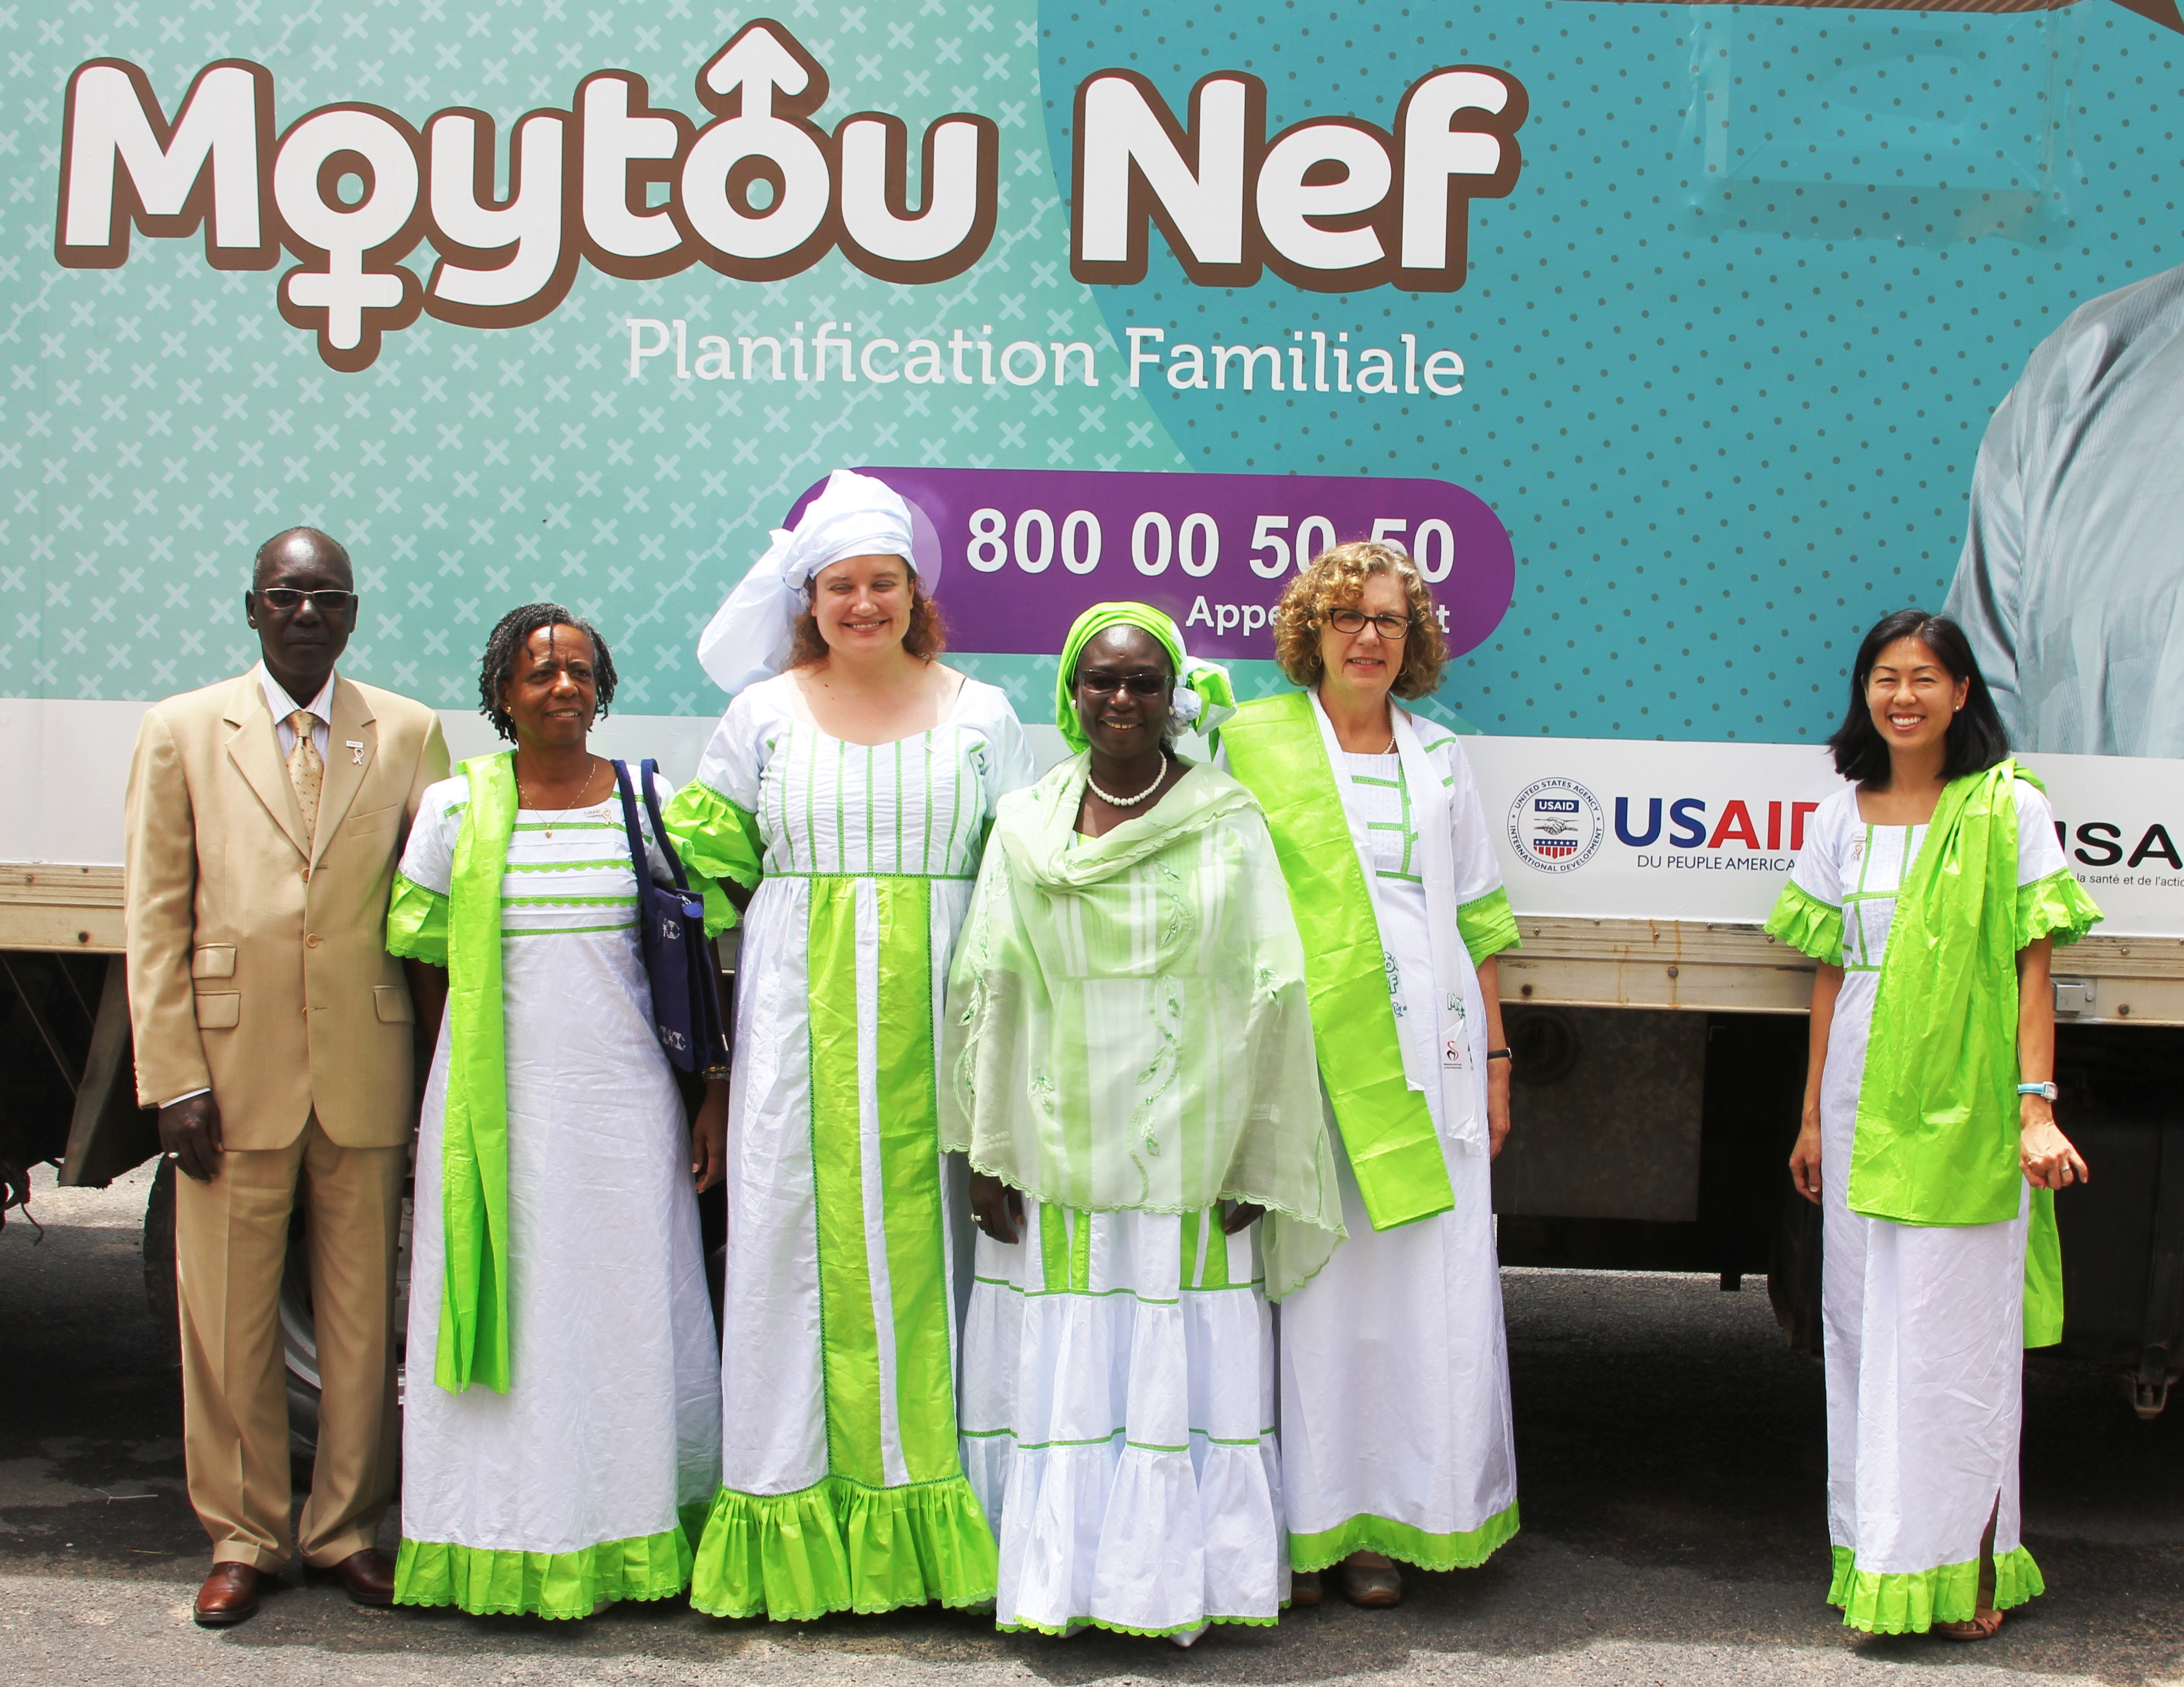 Ms. Clark is shown here in front of a new family planning mobile clinic with USAID Acting Mission Director Alfreda Brewer